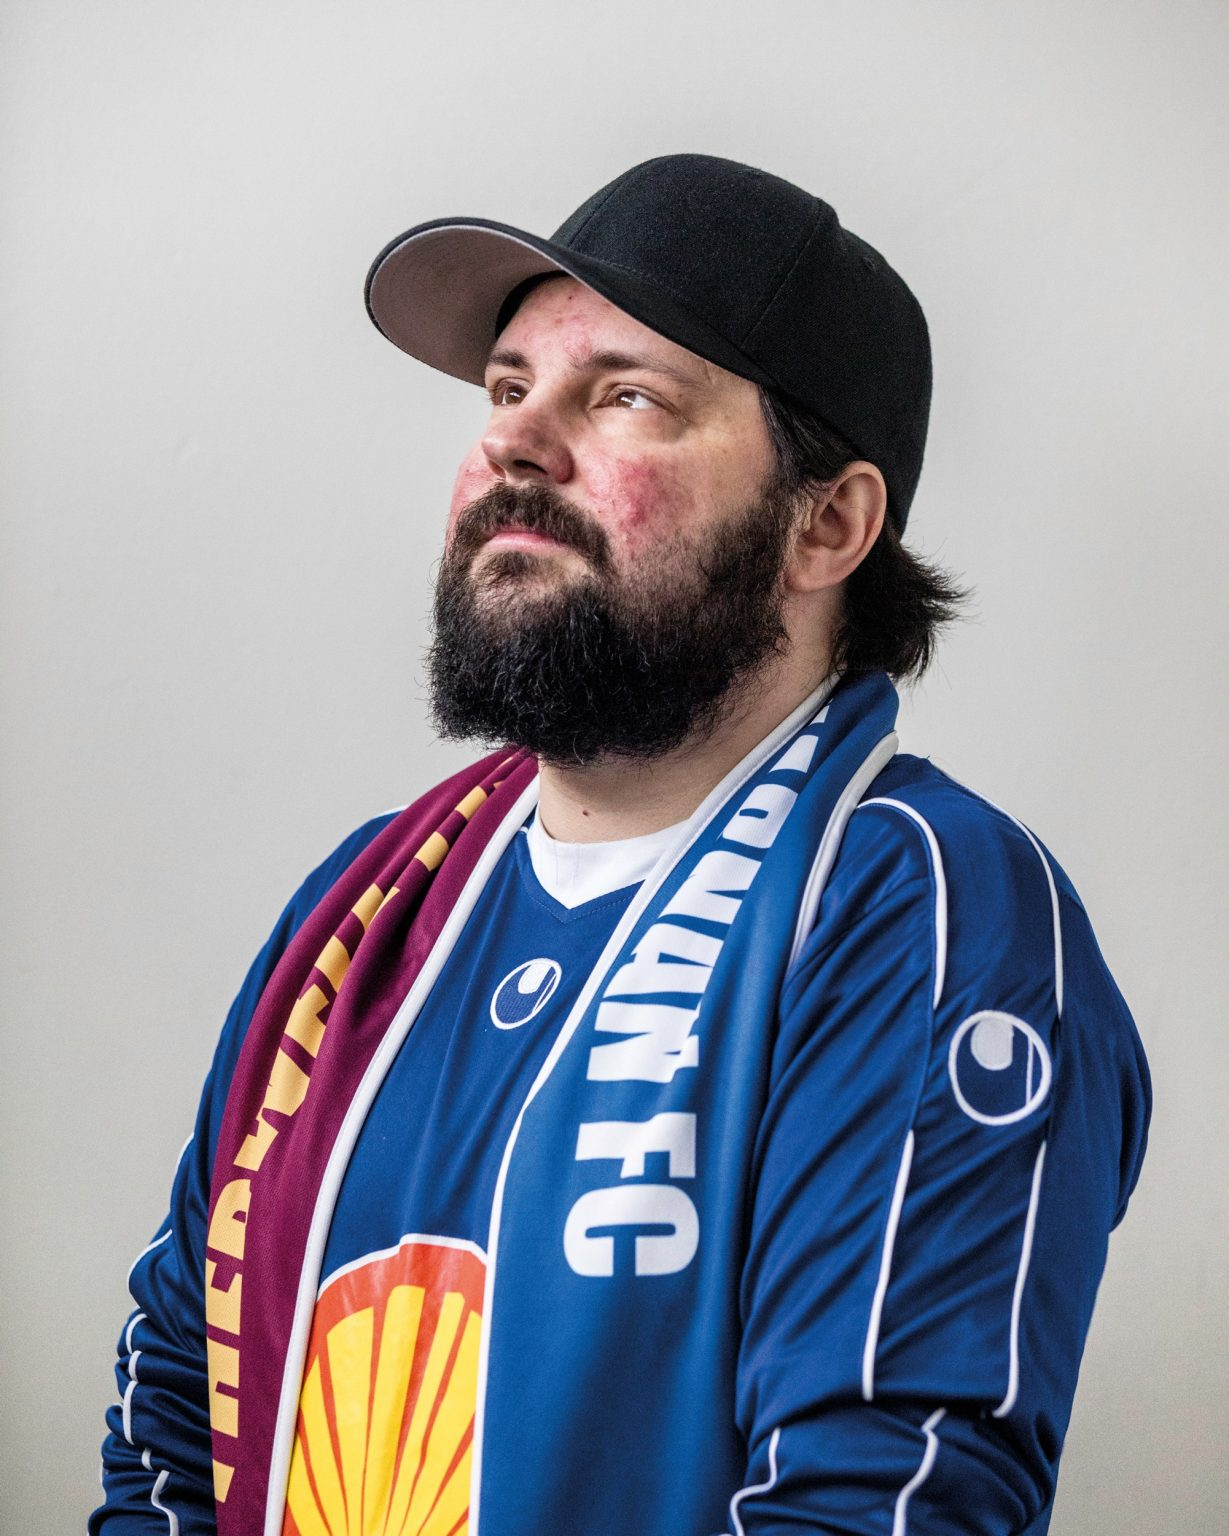 Hákon Freyr Waage, 36, an active member of the Silver Spoon, the Stjarnan fan club. From here comes the Viking applause (geyser sound) that made Iceland fans famous all over the world. Reykjavík, Iceland, 2018